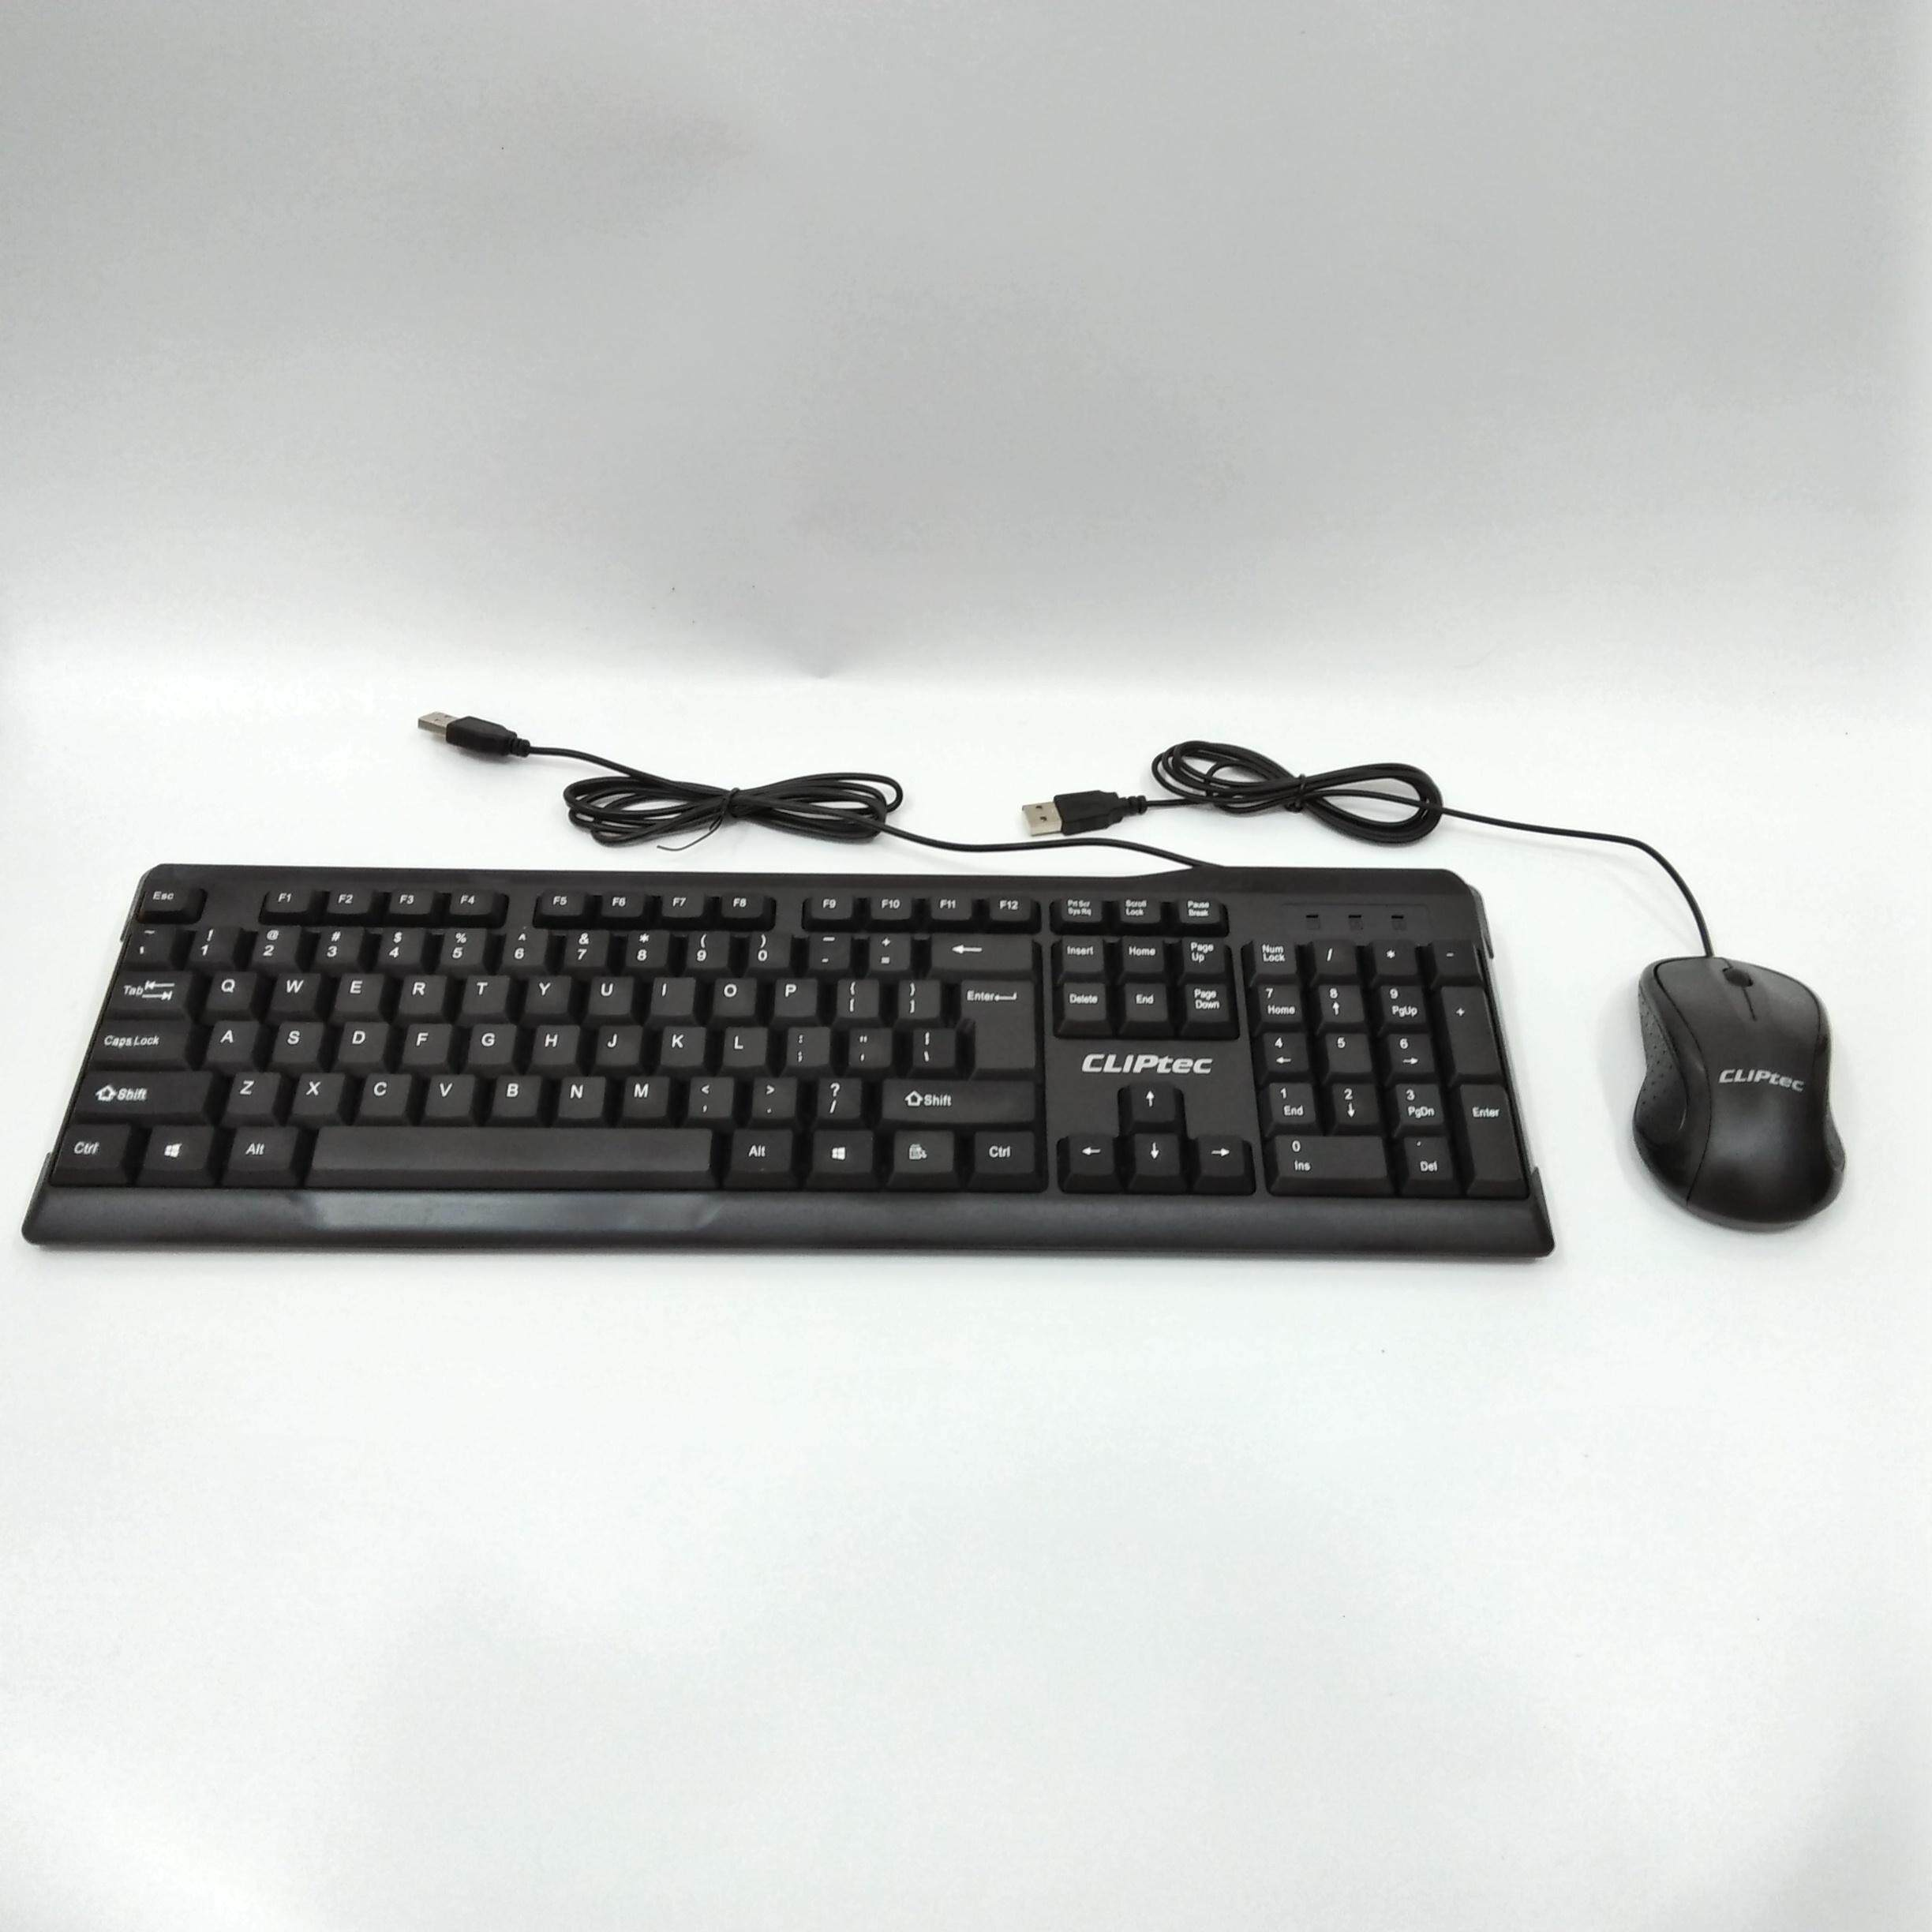 CLiPtec OFIZ-COMBO USB Keyboard and Mouse Combo Set RZK261